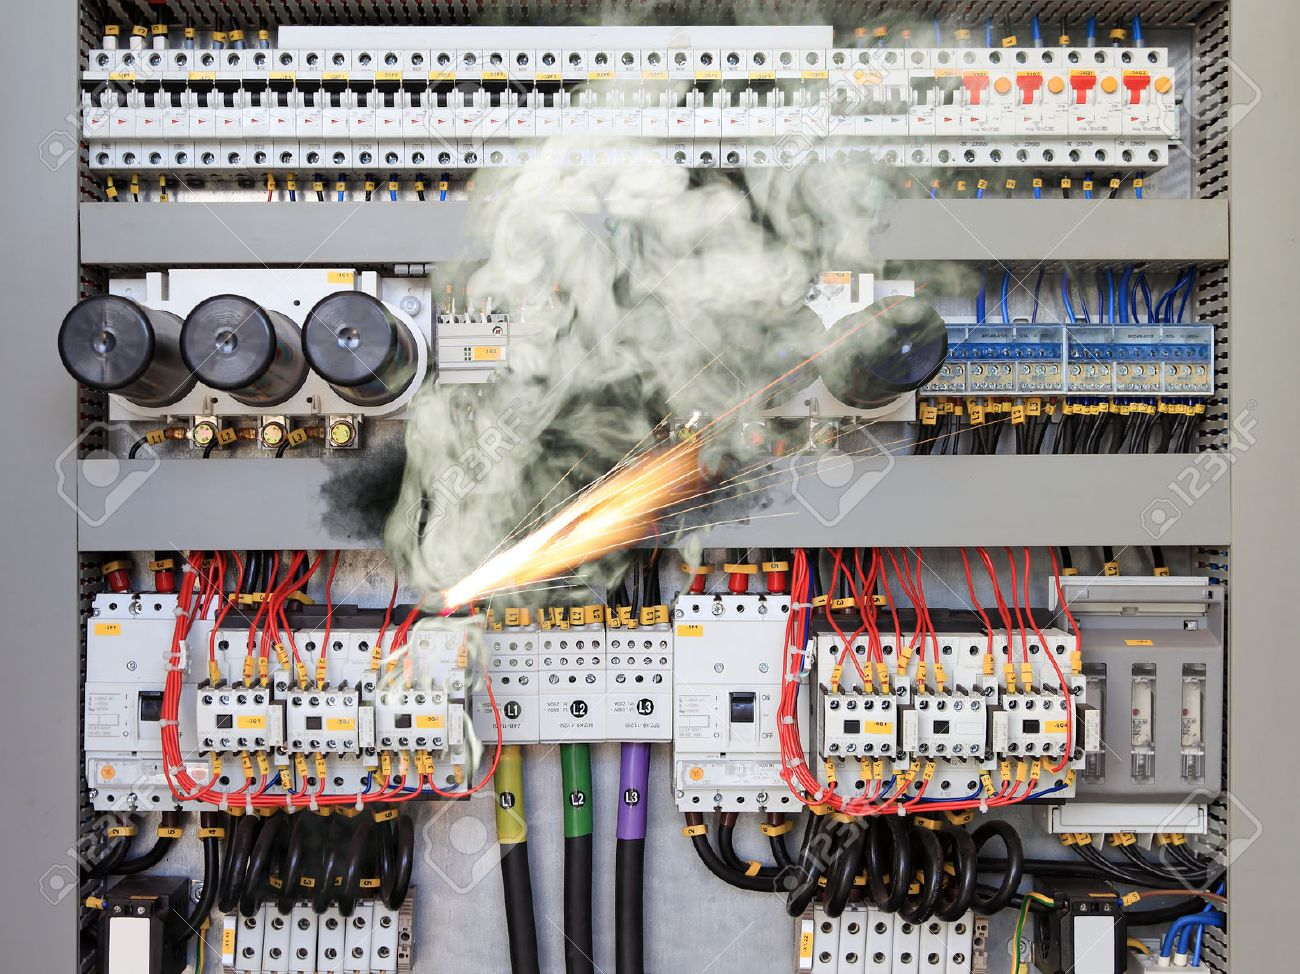 fuse box stock photos & pictures royalty free fuse box images and Fuse Box Short Circuit fuse box overloaded electrical circuit causing electrical short and fire stock photo fuse box short circuit